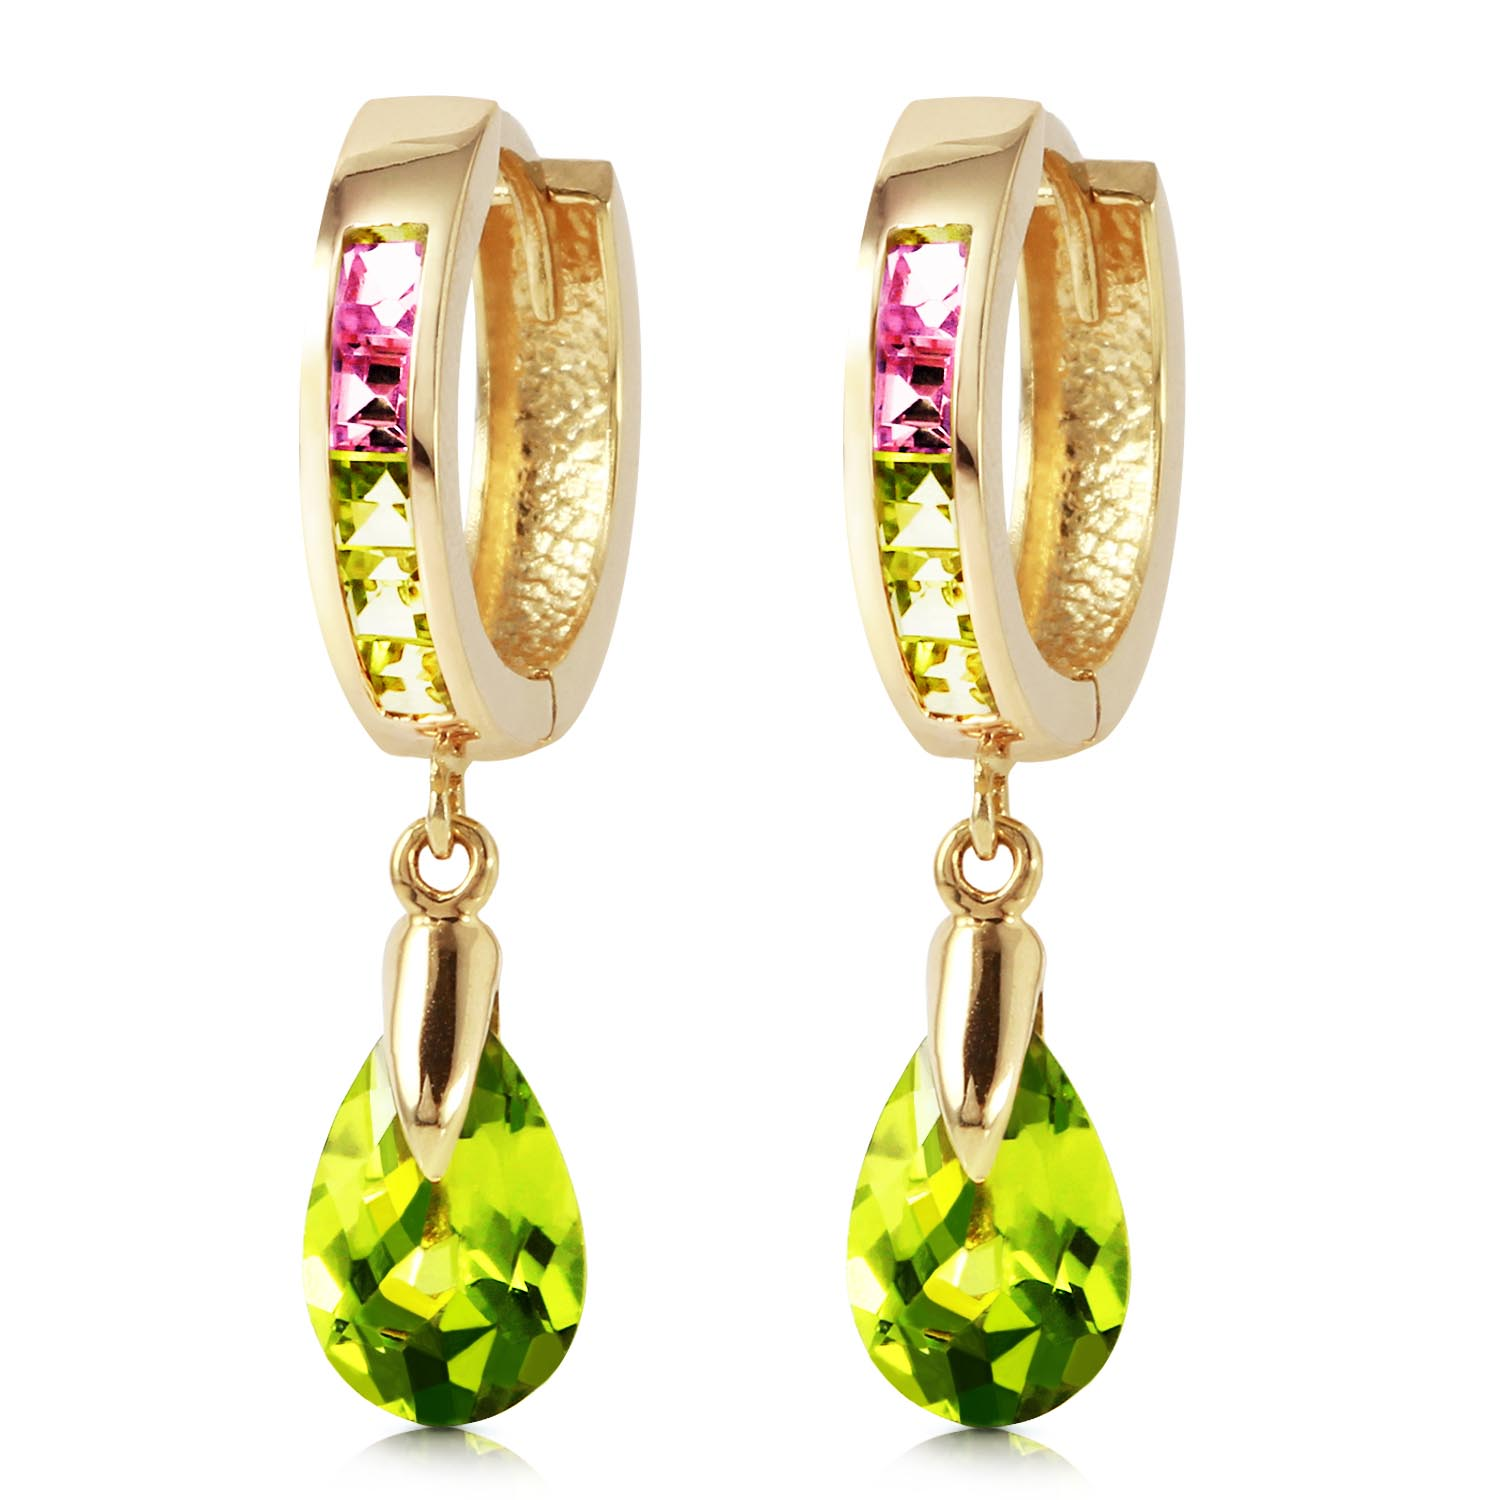 Cubic Zirconia Droplet Huggie Earrings 5.68ctw in 9ct Gold